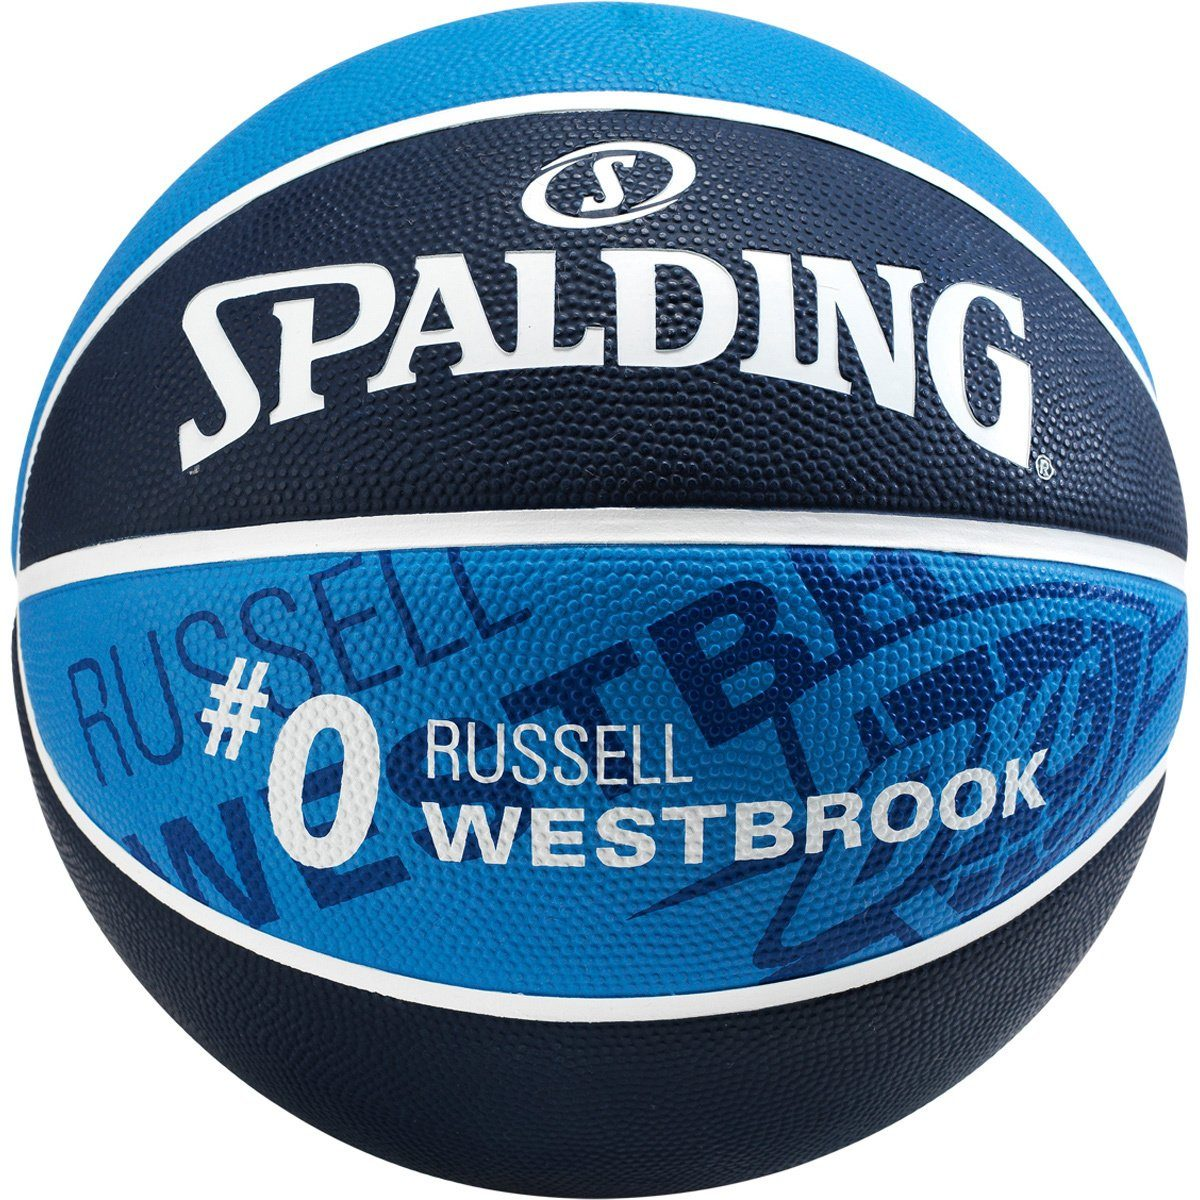 SPALDING NBA Player Russell Westbrook Basketball